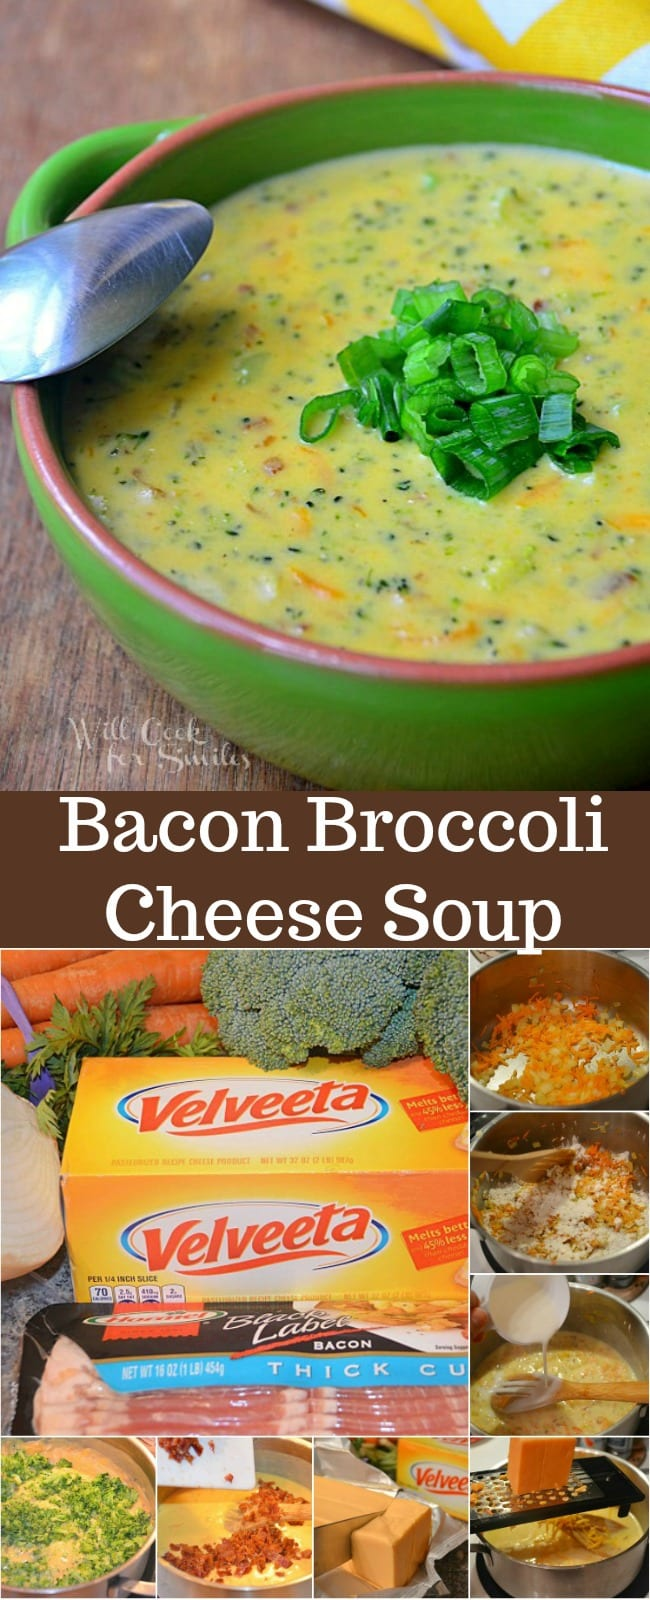 Broccoli Cheese Soup is the most comforting that's easy to make and makes the whole family happy. This is the best broccoli cheese soup because it's loaded with bacon as well. #soup #broccolisoup #broccolicheese #bacon